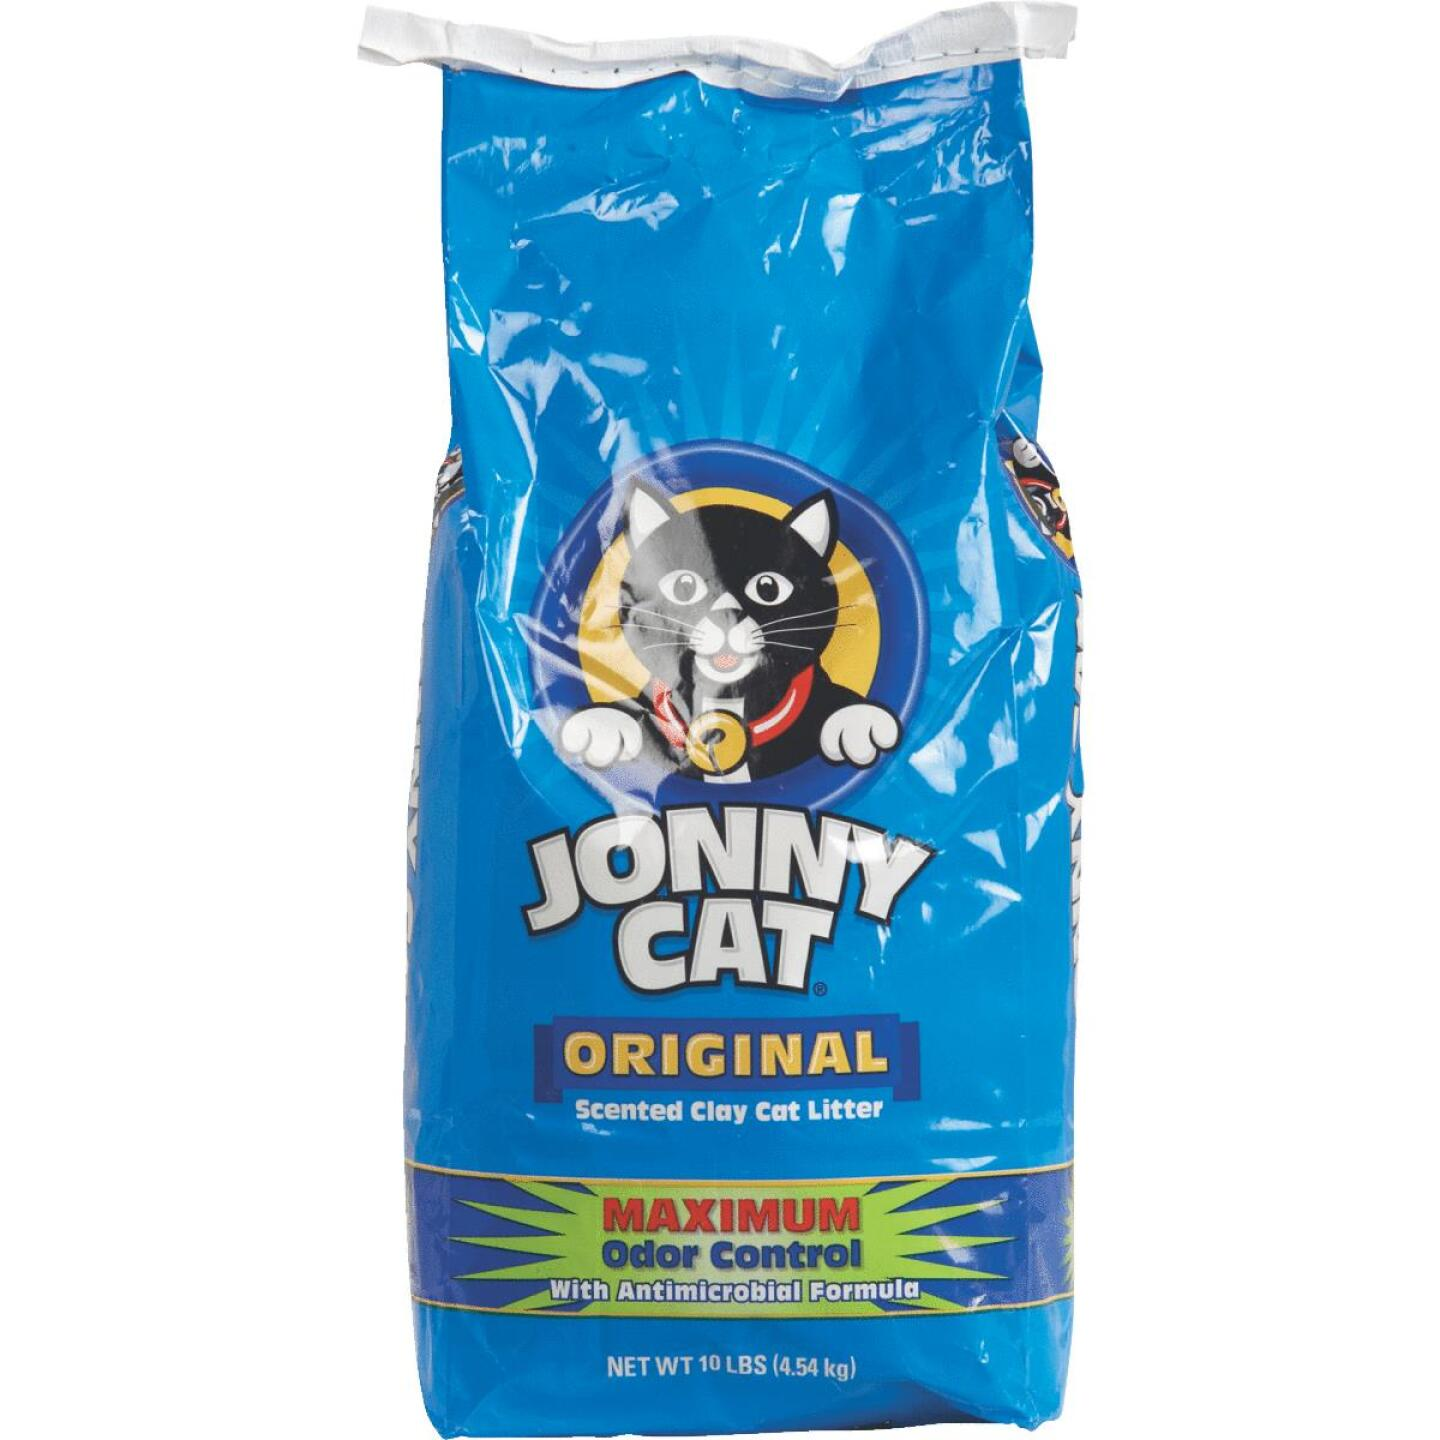 Oil Dri Jonny Cat 10 Lb. Original Scented Cat Litter Image 1